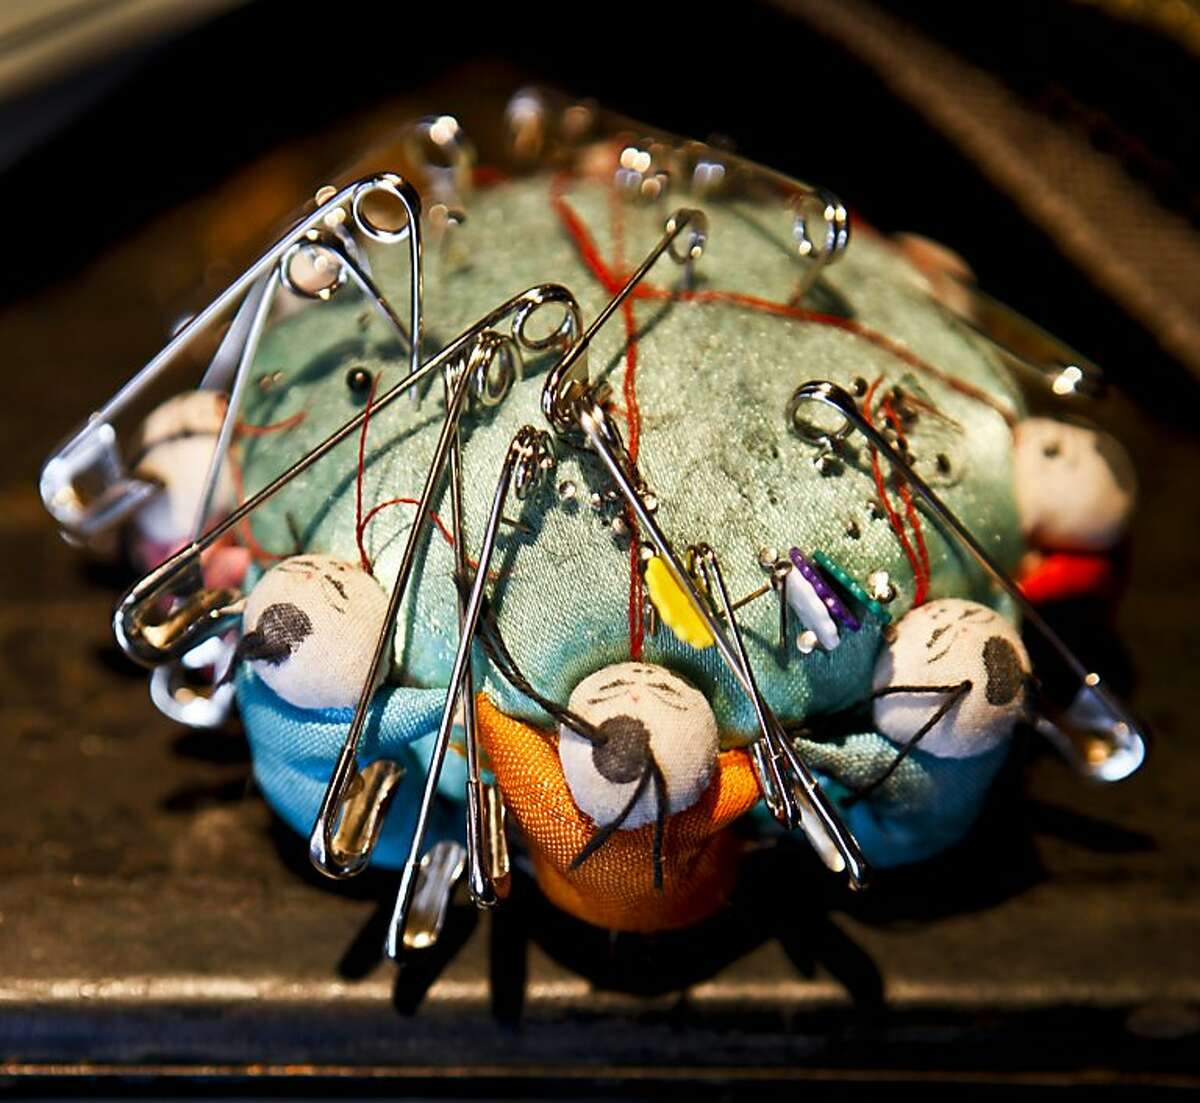 A pin cushion sits on a shelf in tailor and shoemaker Al Ribaya's store, Al's Attire, in North Beach on Tuesday, May 17, 2011 in San Francisco, Calif.